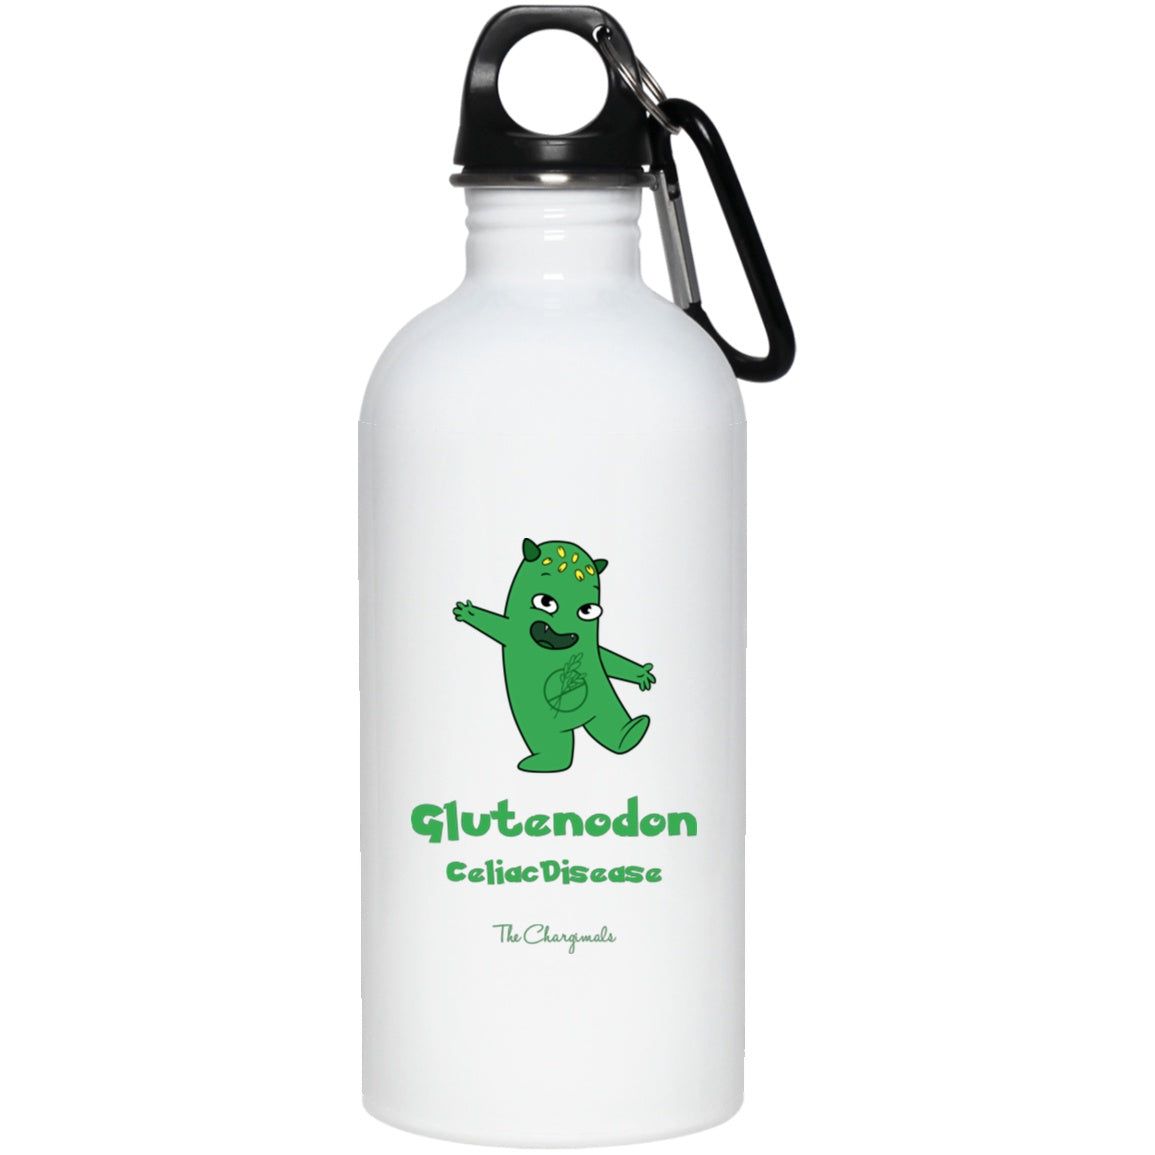 Lutes the Celiac Disease Monster Mug, Travel Mug And Water Bottle - The Unchargeables